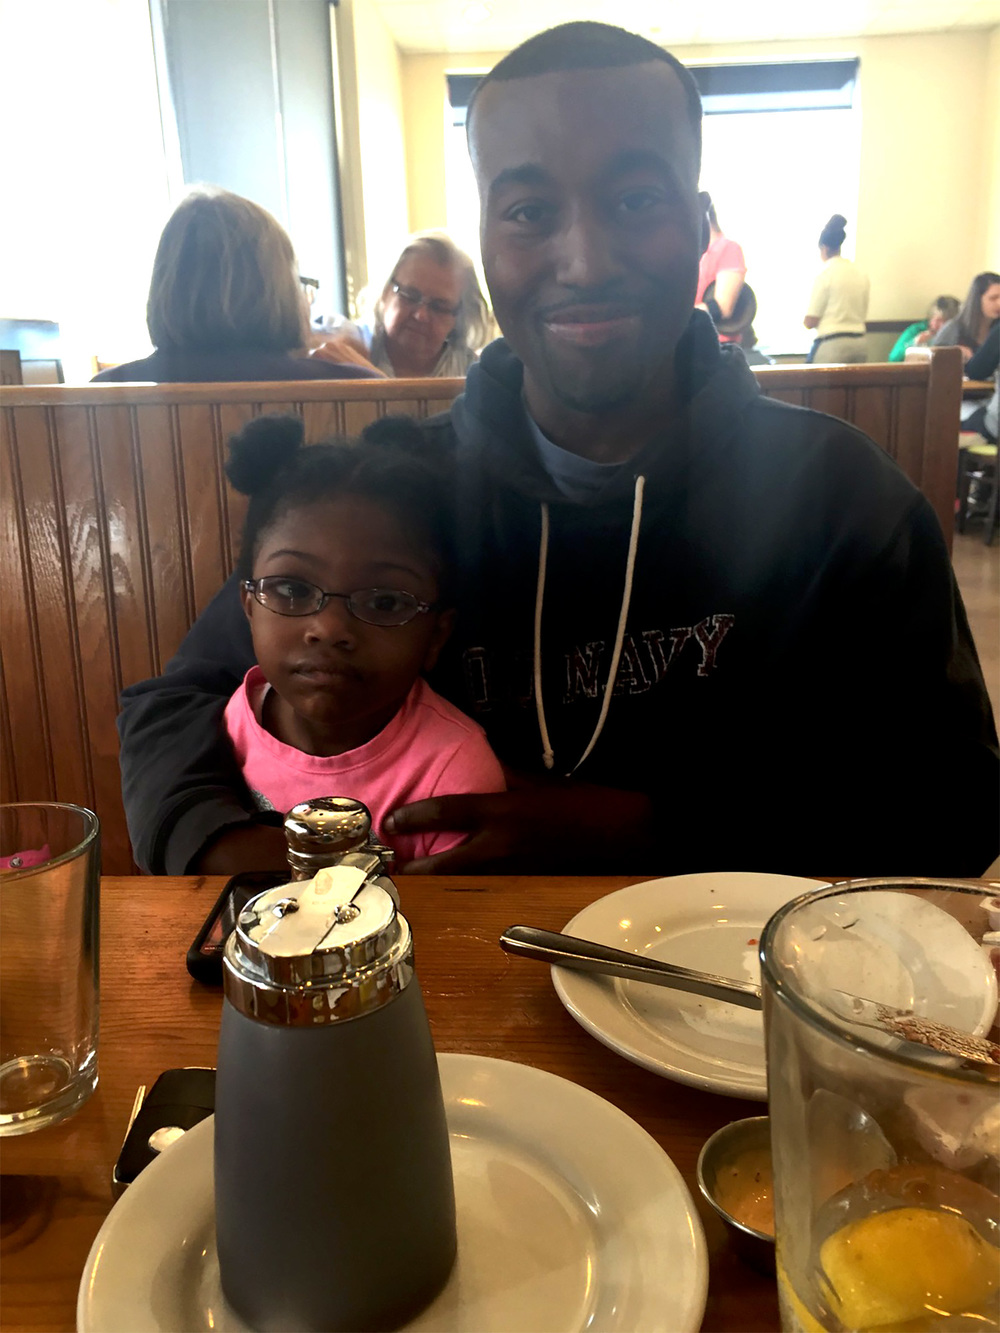 My daughter and I enjoying breakfast. Isn't she adorable?